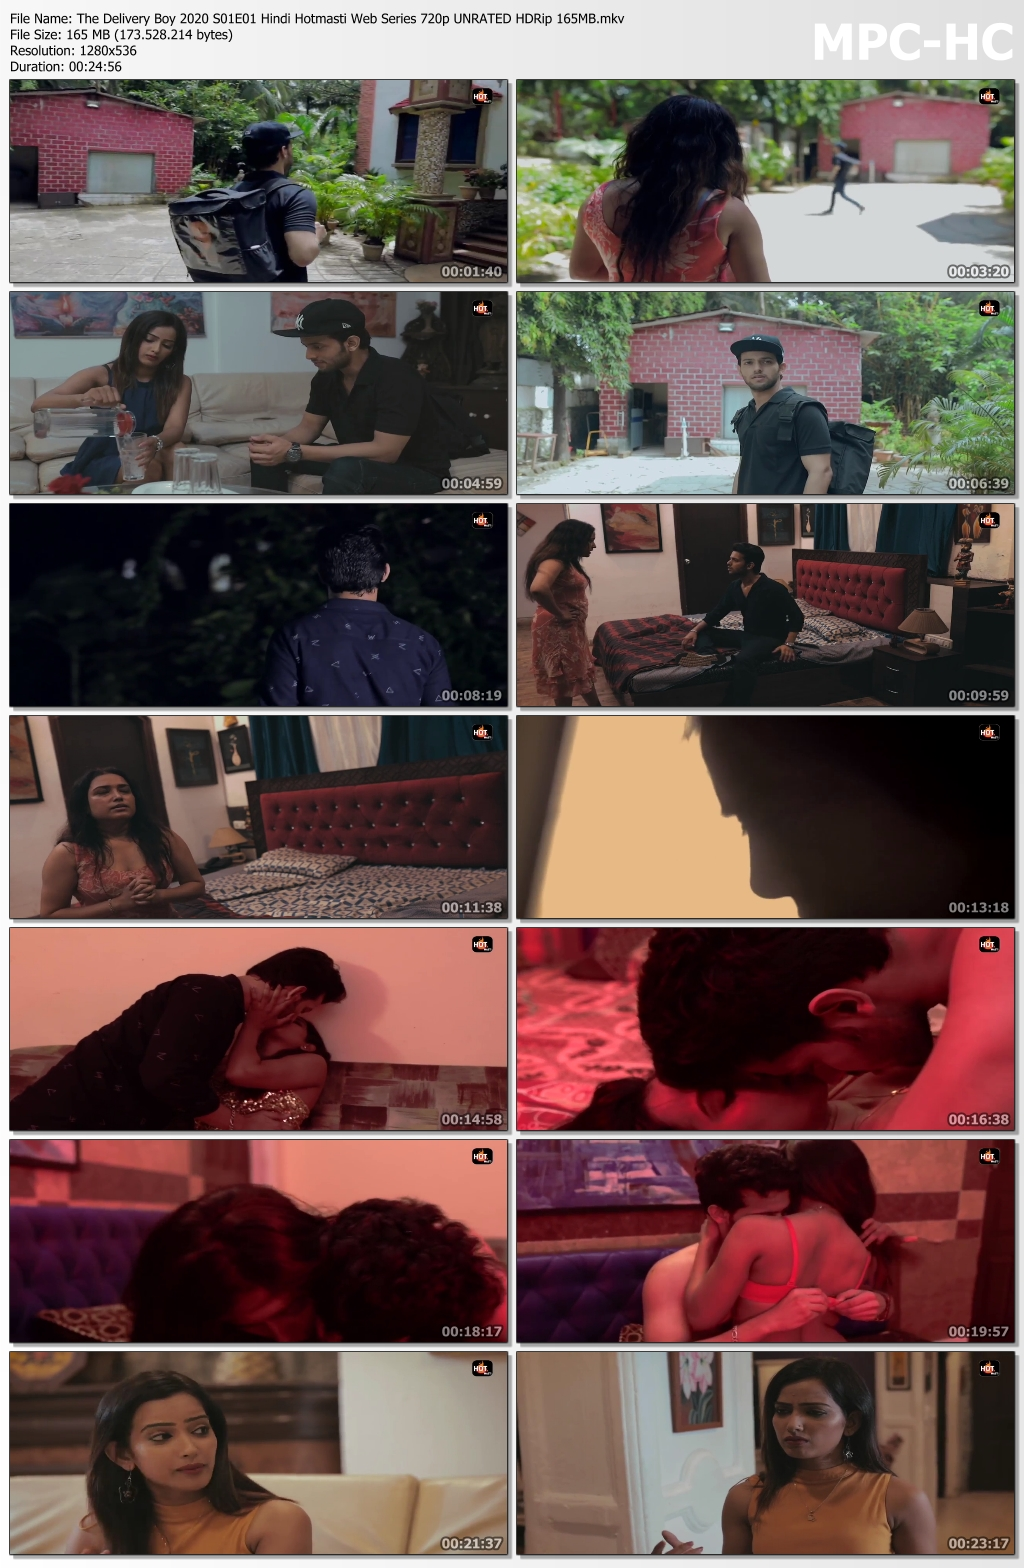 The-Delivery-Boy-2020-S01-E01-Hindi-Hotmasti-Web-Series-720p-UNRATED-HDRip-165-MB-mkv-thumbs